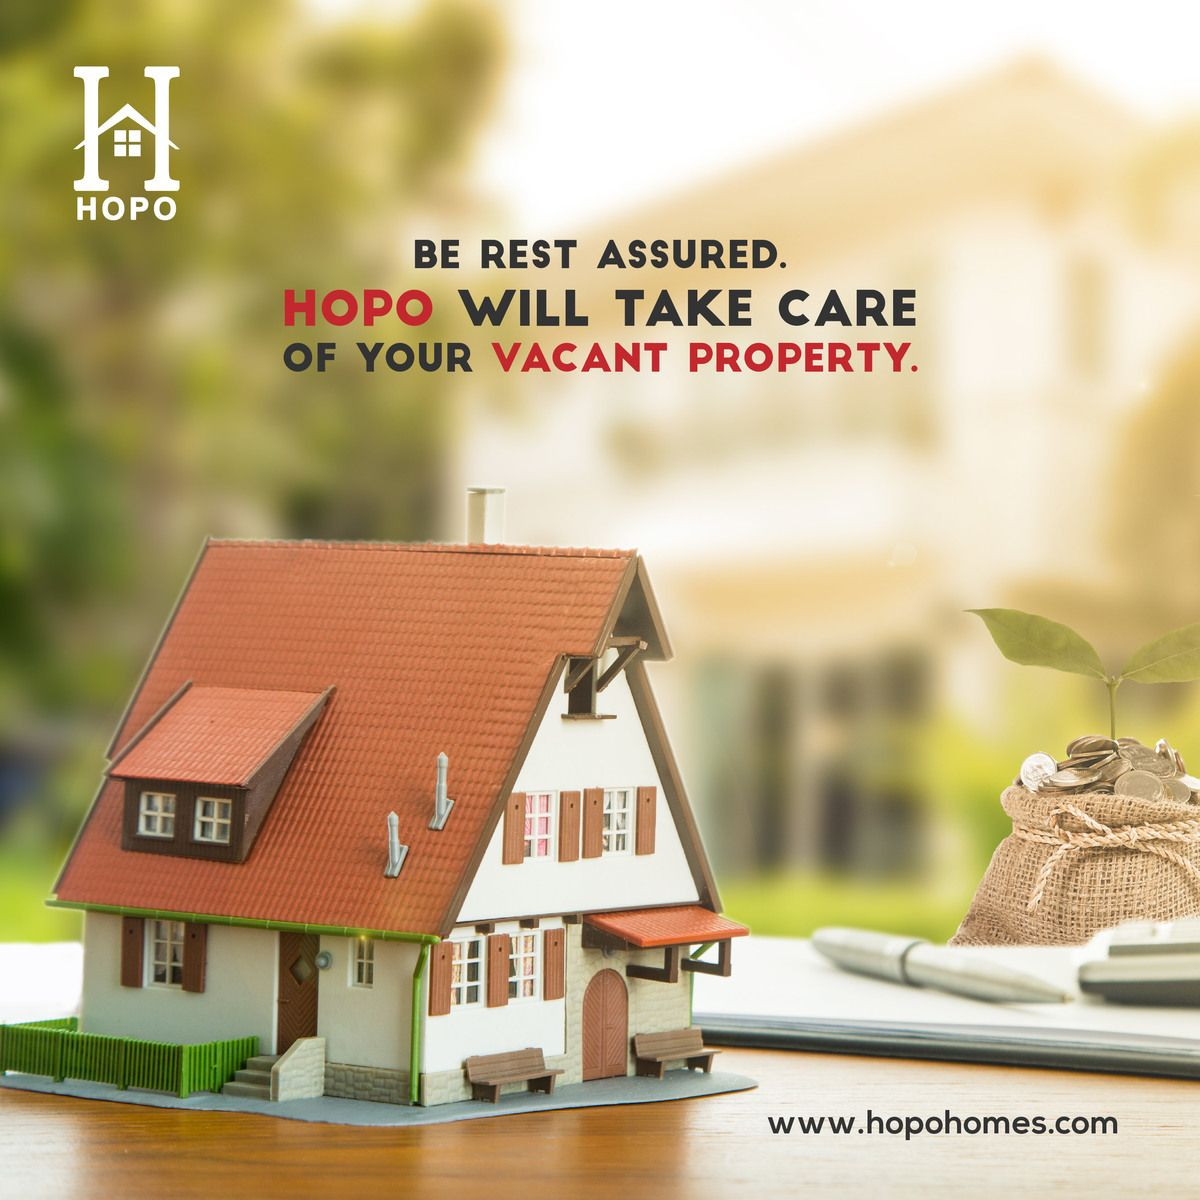 Landlords! Be rest assured HOPO will take care of your